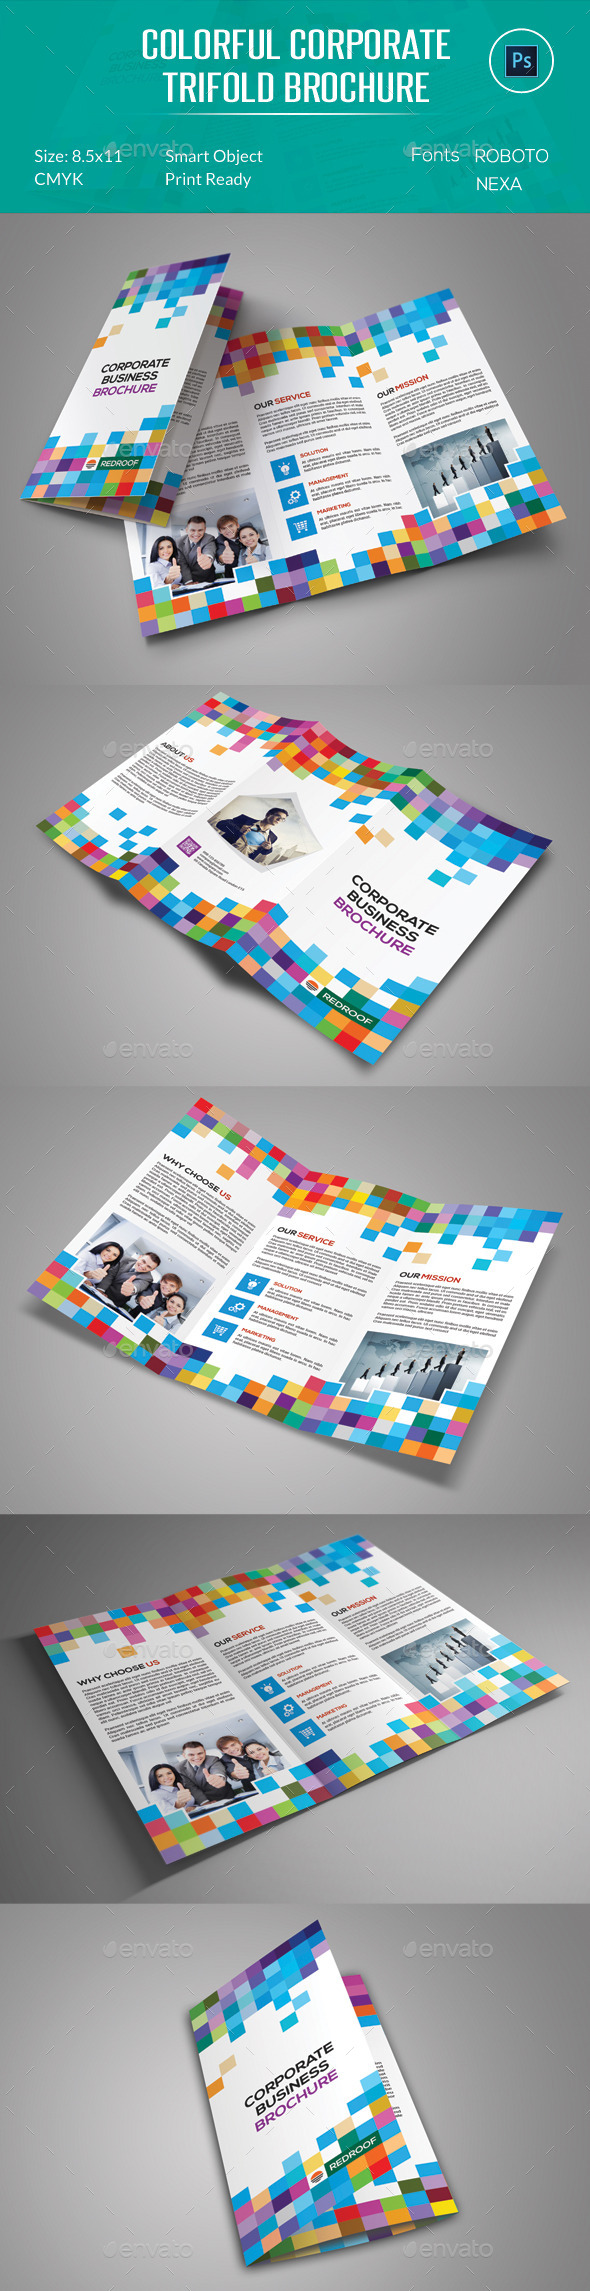 Colorful Corporate Trifold Brochure - Corporate Brochures